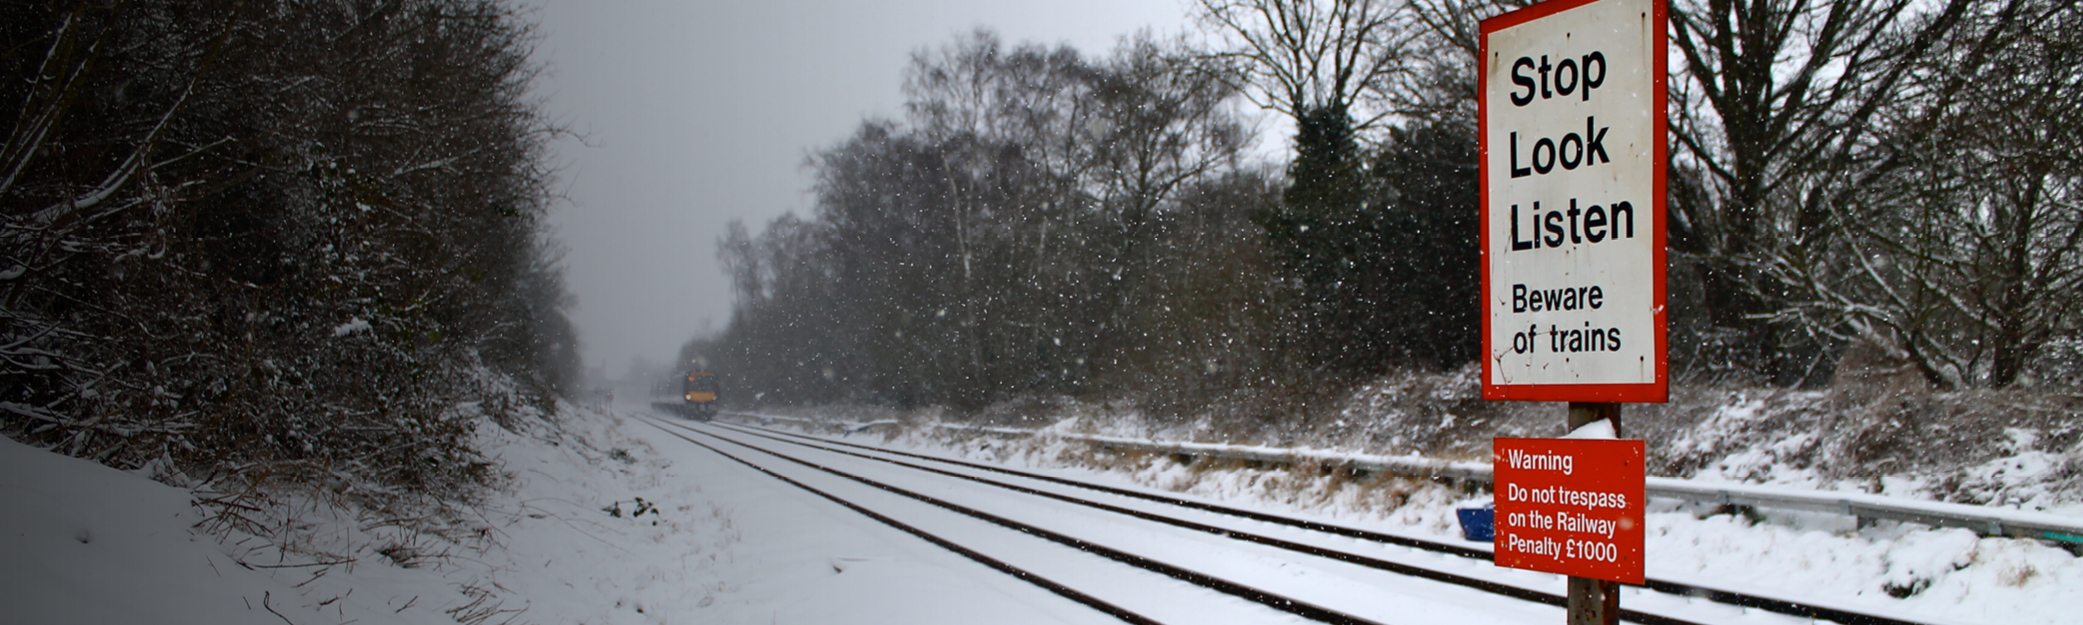 Railway level crossing with signs and train in the distance in the snow